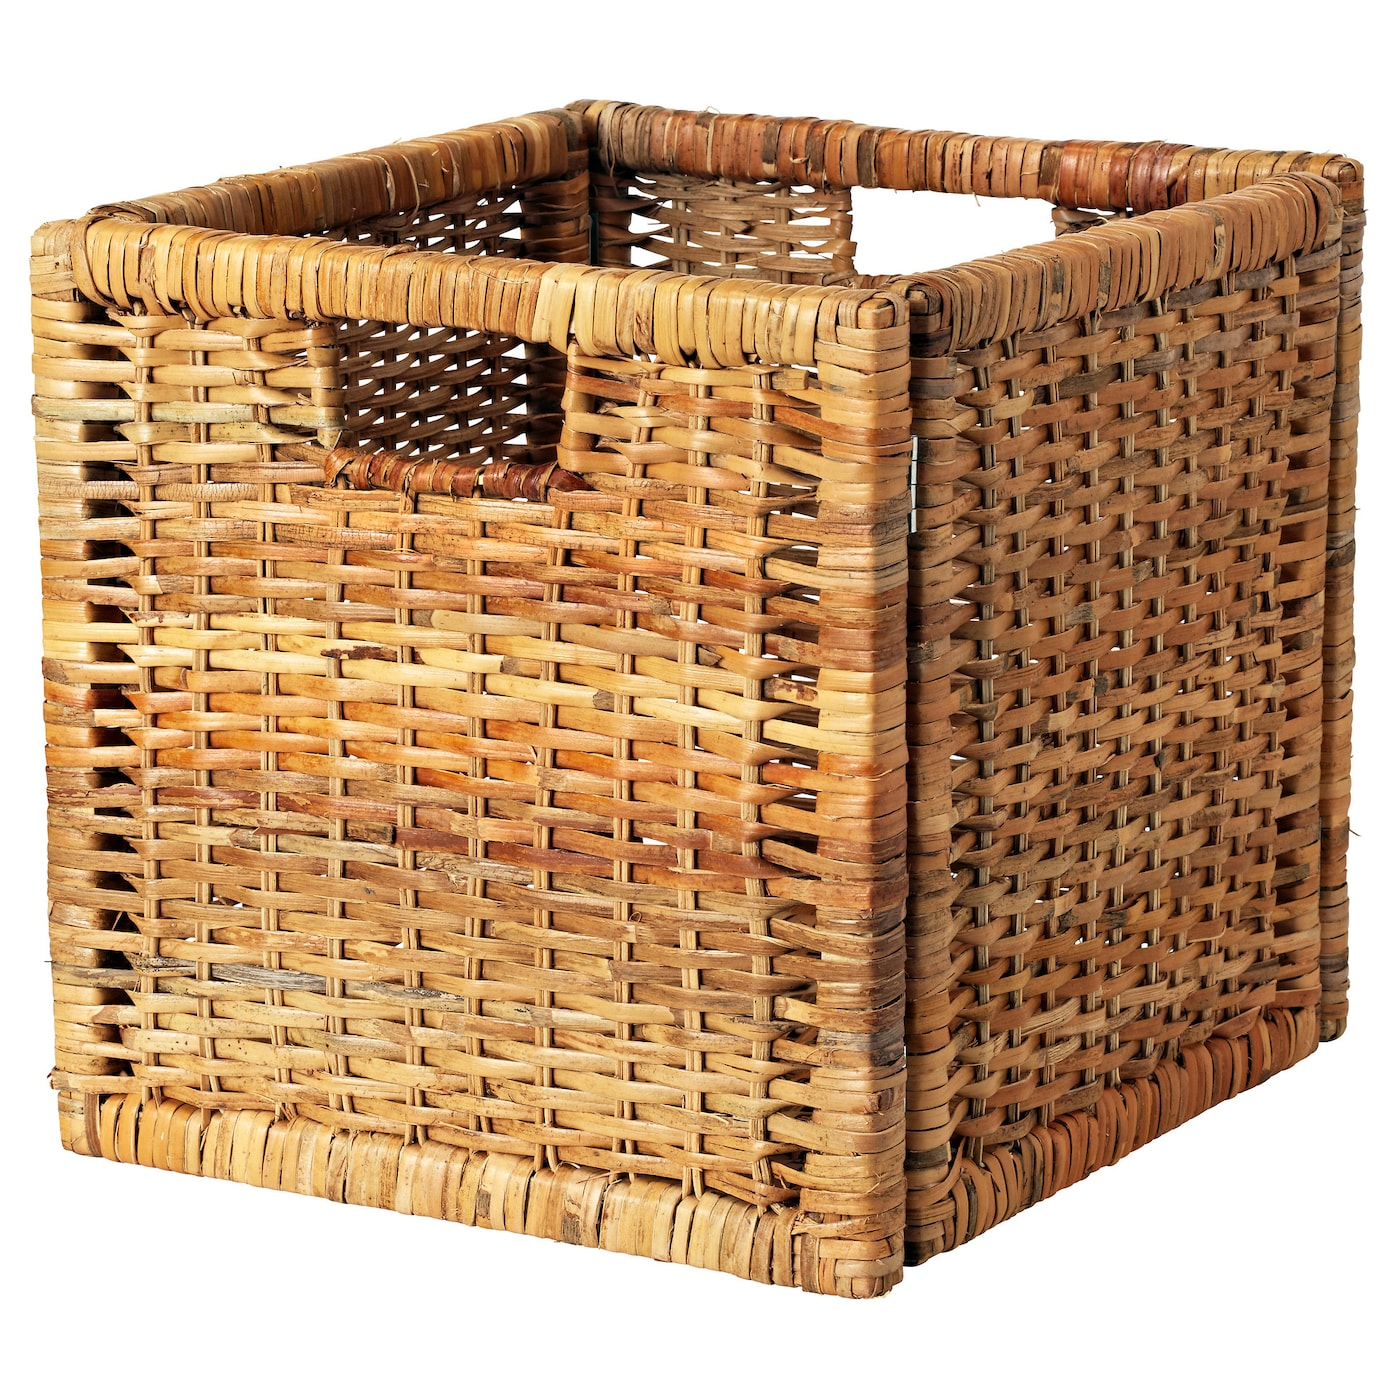 Modern & Contemporary Storage Boxes, Bins, Baskets & Buckets If you're looking to.